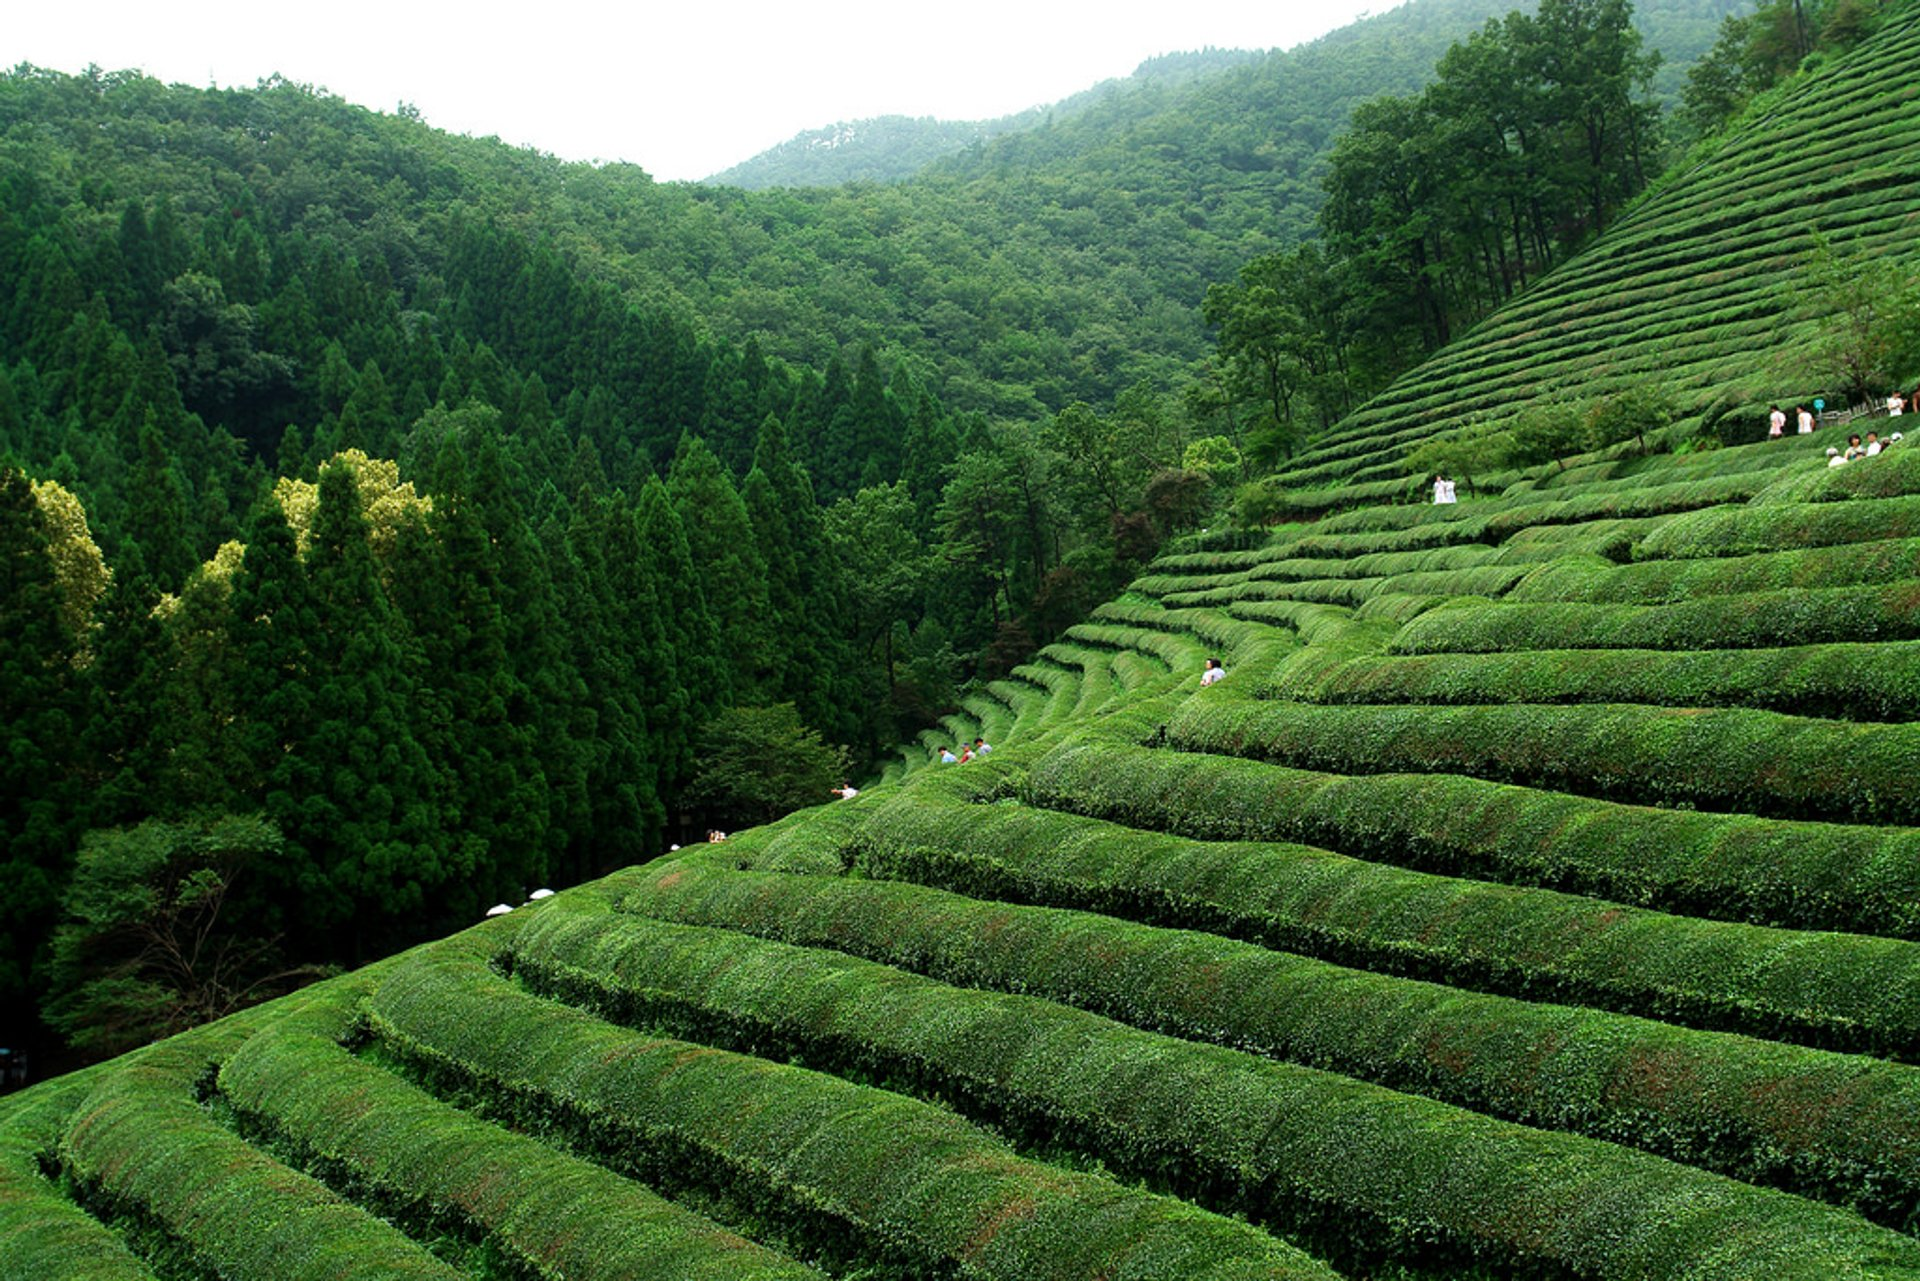 Boseong green tea fields 2020